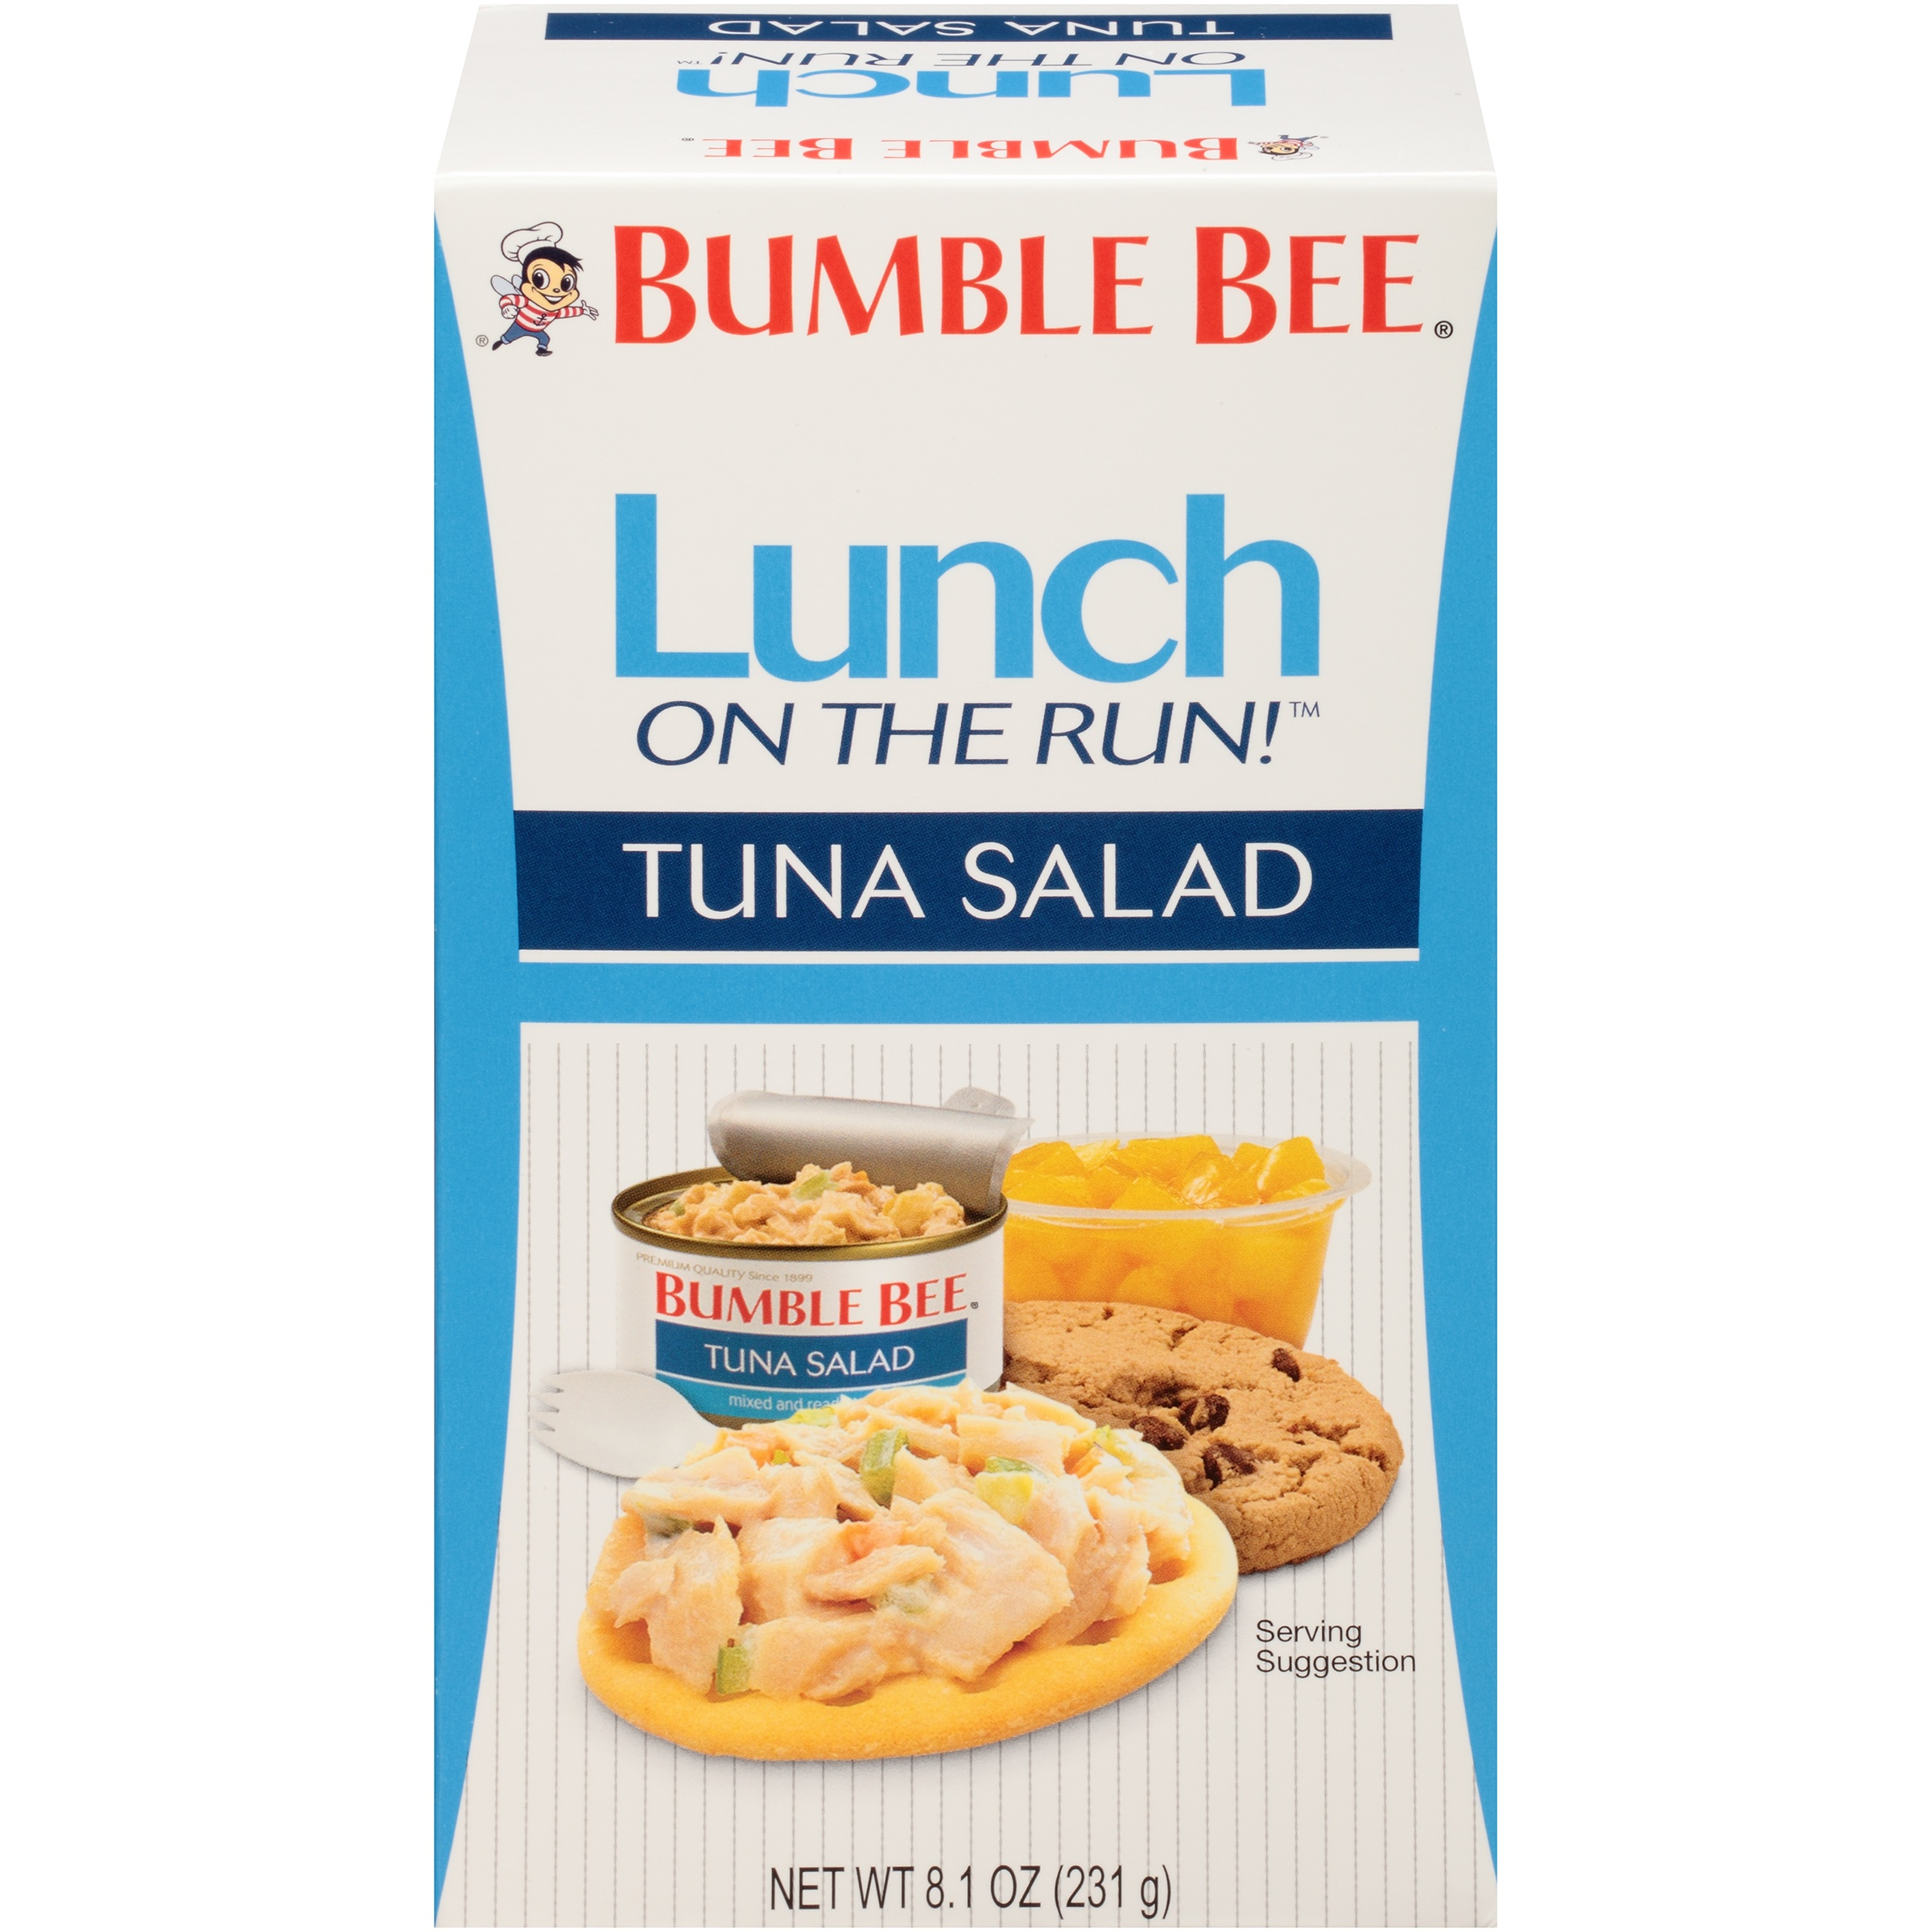 Bumble Bee Lunch on the Run! Tuna Salad with Crackers, Good Source of Protein, 8.1oz Kit